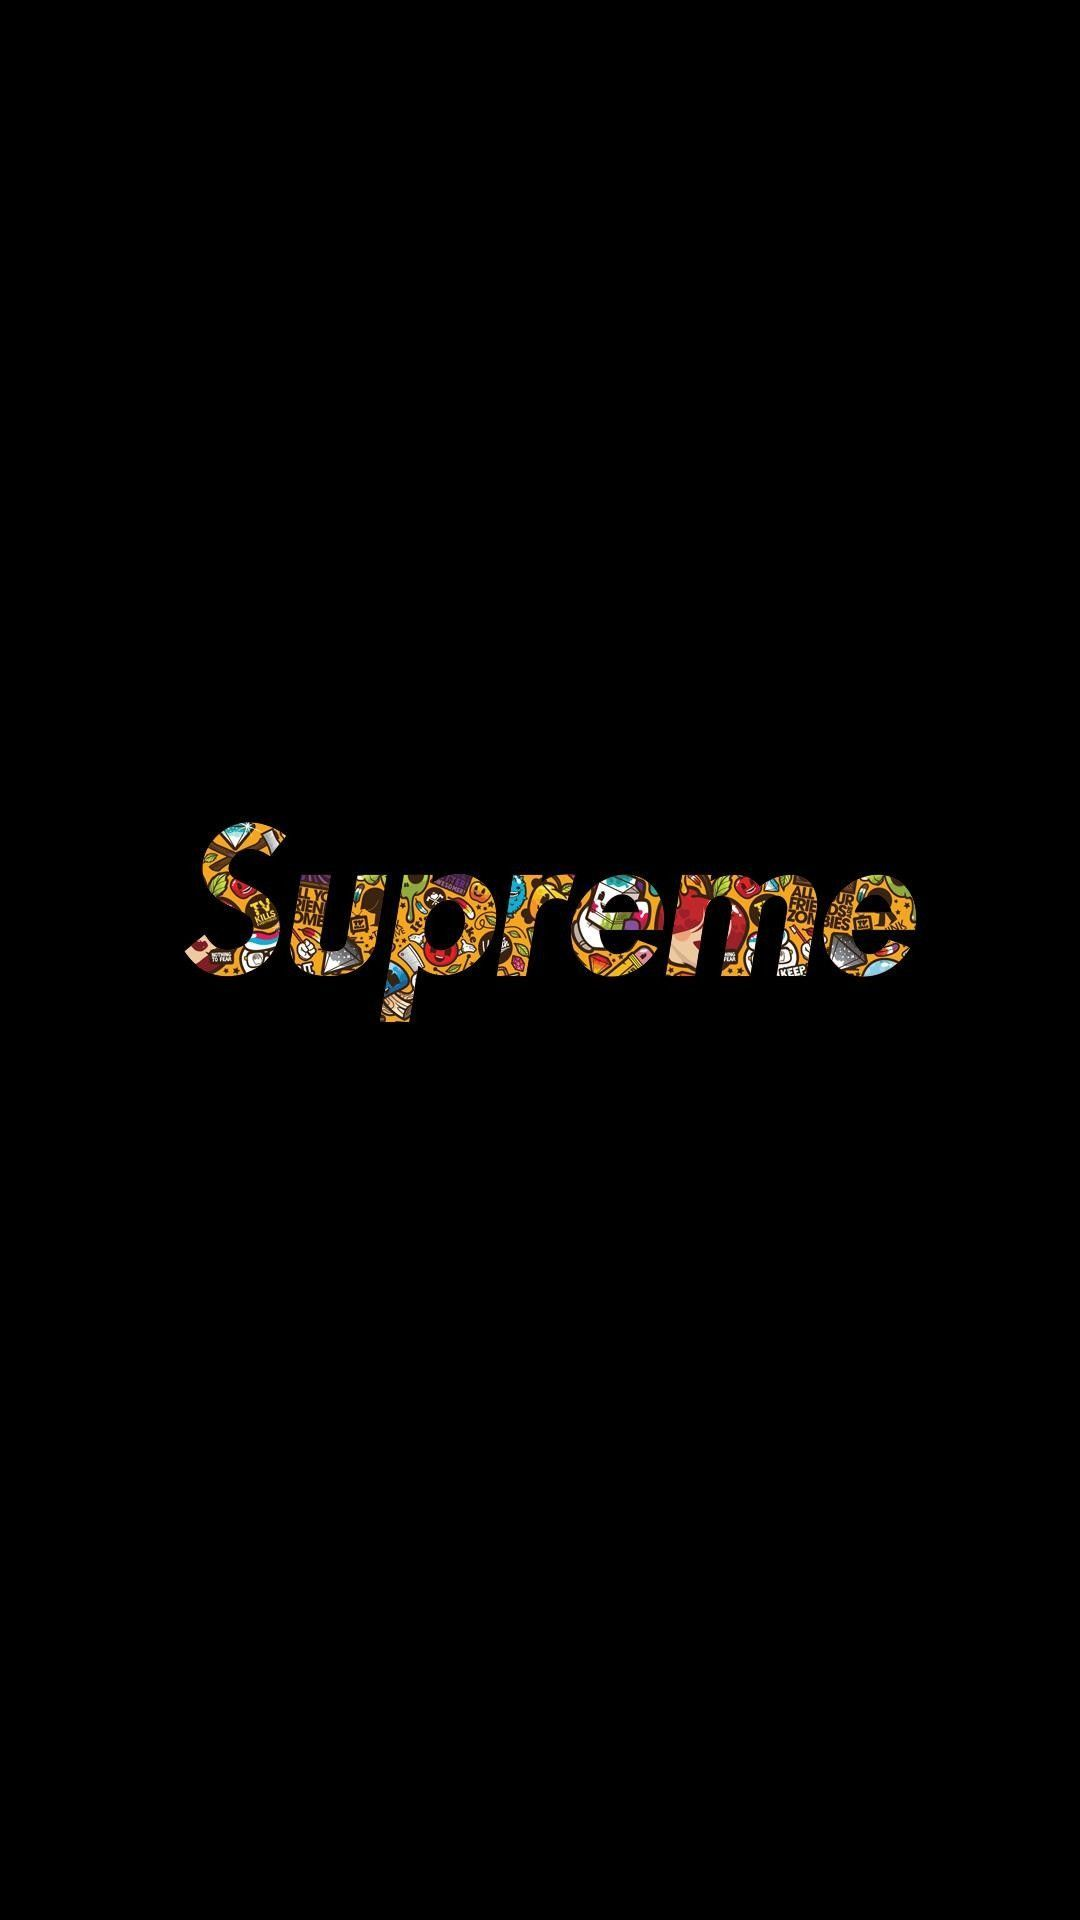 Hypebeast Wallpapers Nixxboi In 2020 Supreme Iphone Wallpaper Hypebeast Wallpaper Supreme Wallpaper